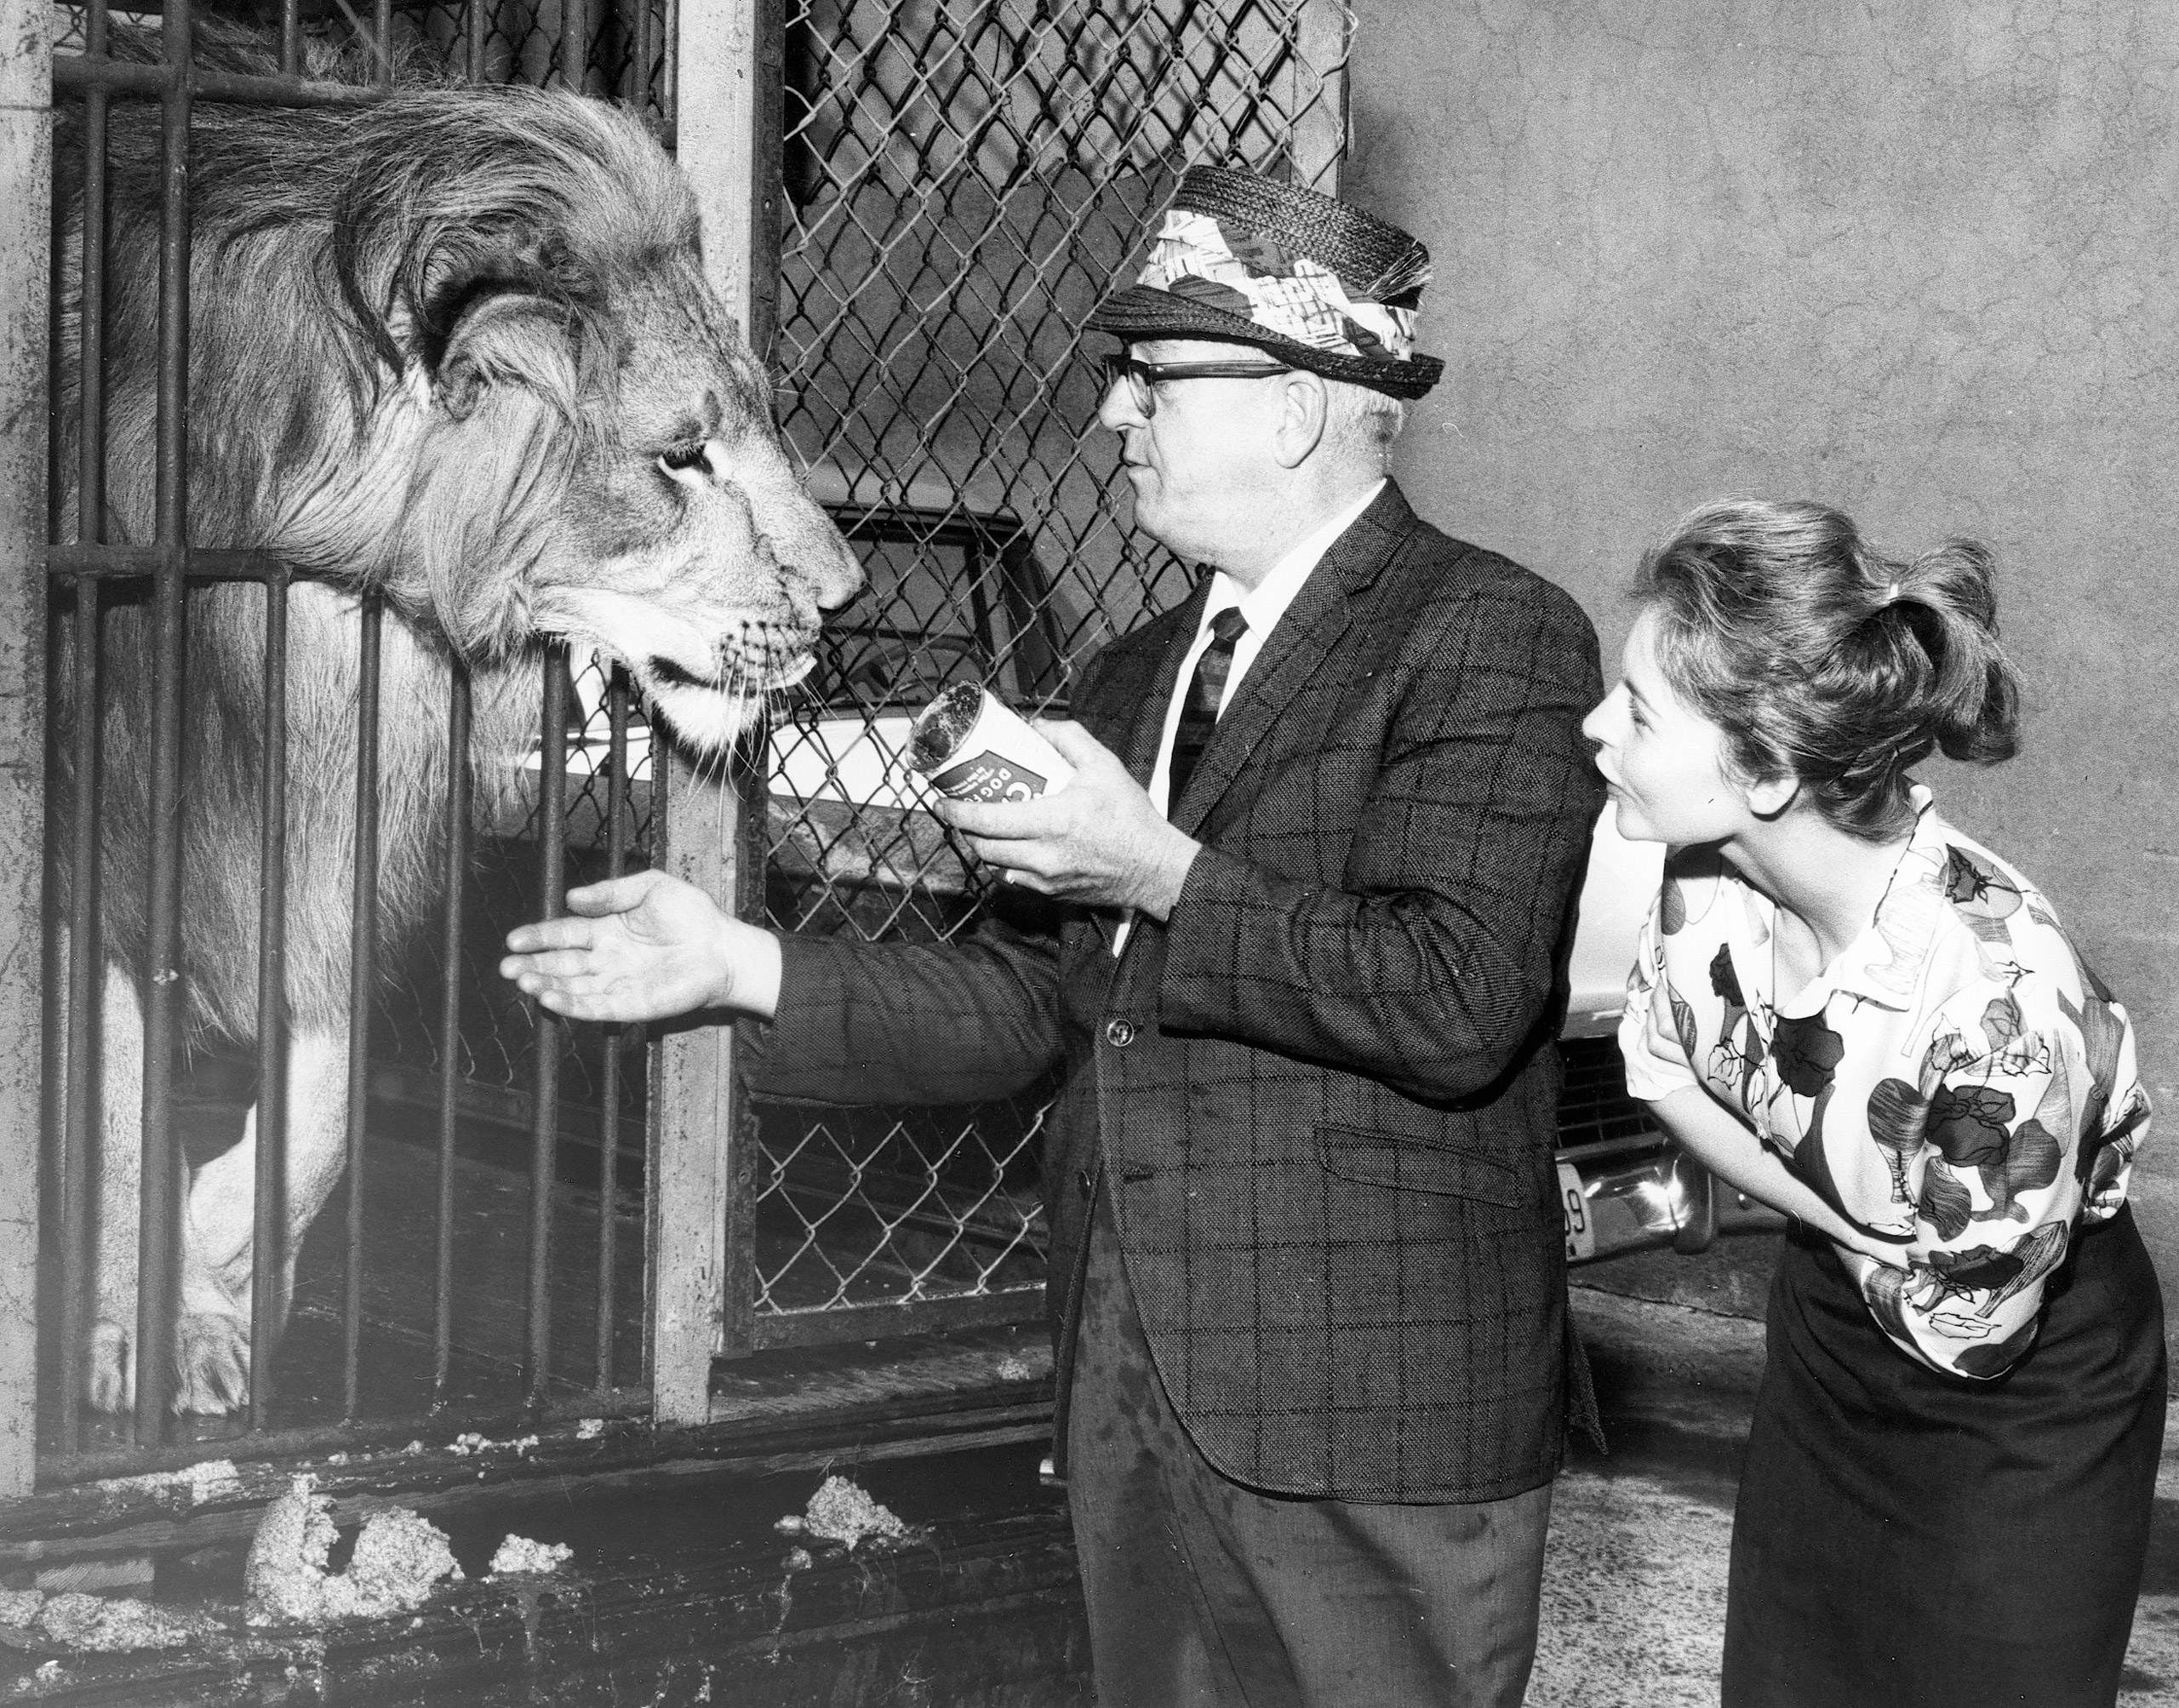 Circus lion gets a visit at the ASPCA Animal Port at Idlewild (John F. Kennedy) Airport, 1960s.